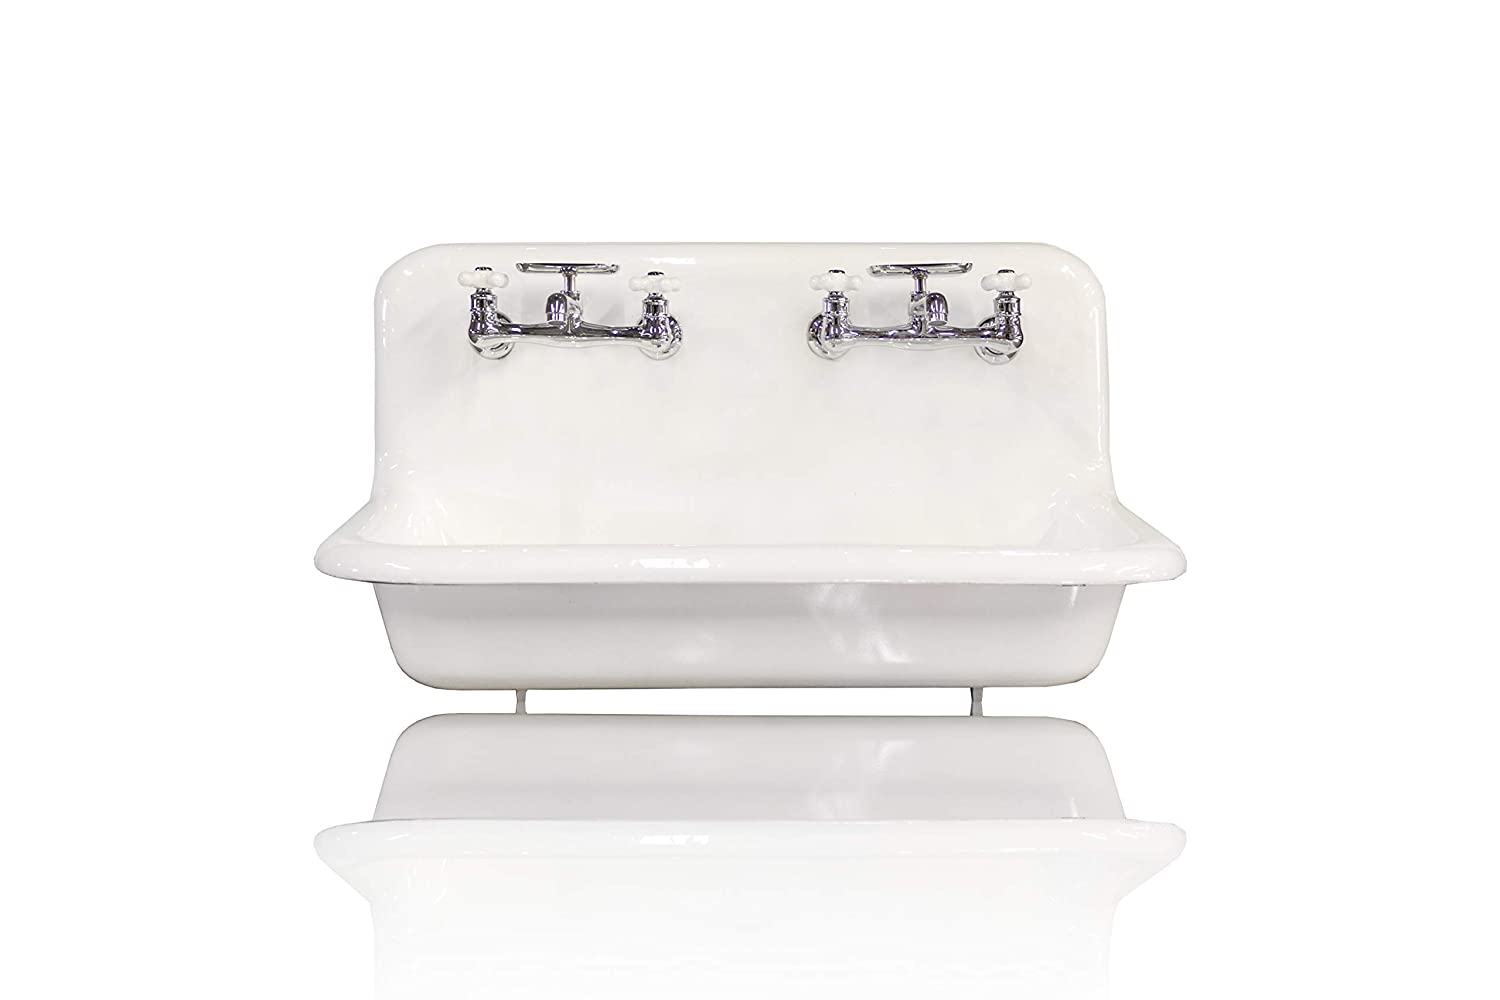 Amazon Com New 36 Antique Inspired High Back Farm Sink Cast Iron Original Porcelain Double Faucet Wall Mount Sink Package 3 5 Drain Bright White Handmade